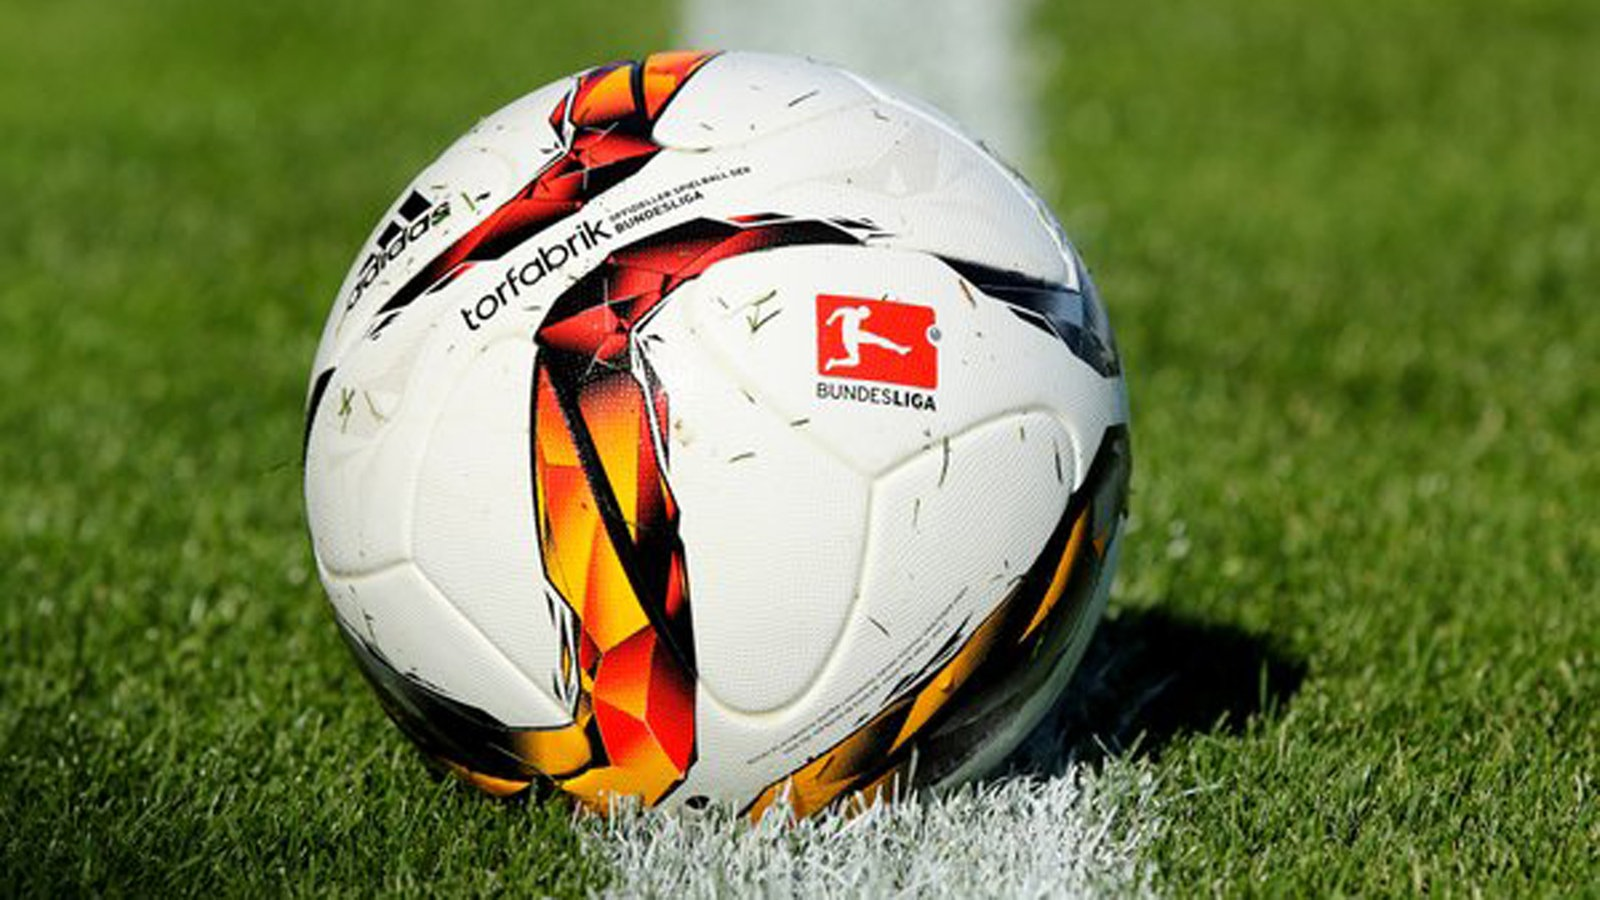 Fu ball bundesliga bundesliga fu ball for Tabelle live bundesliga